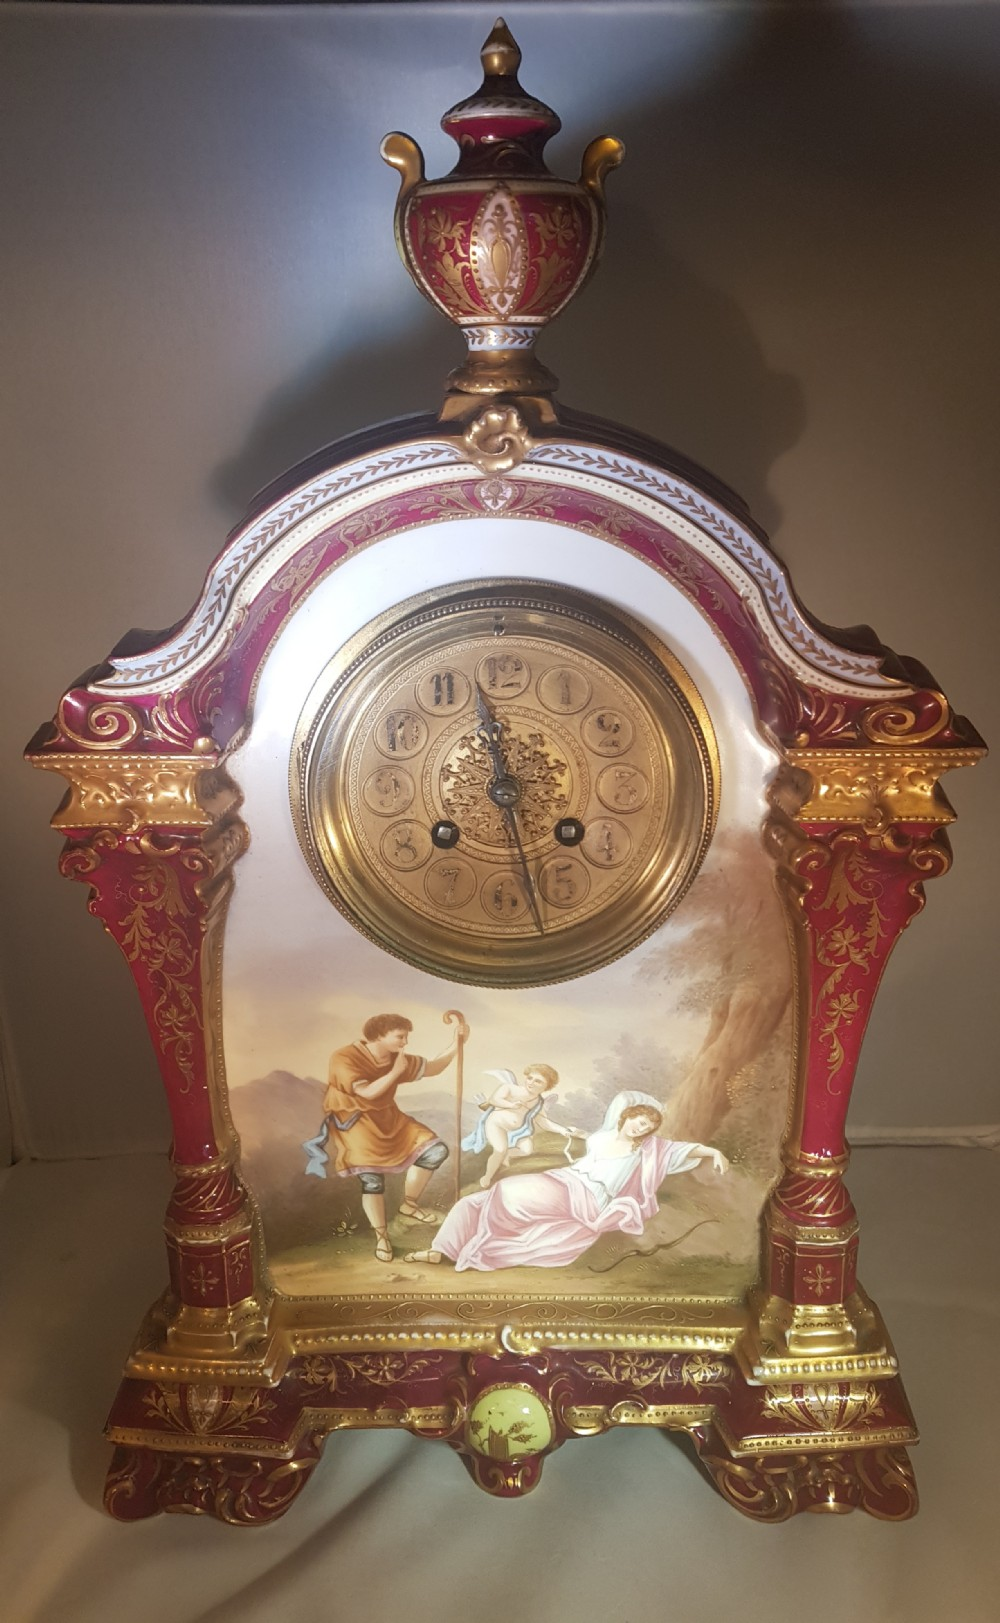 royal vienna porcelain clock with a painted panel